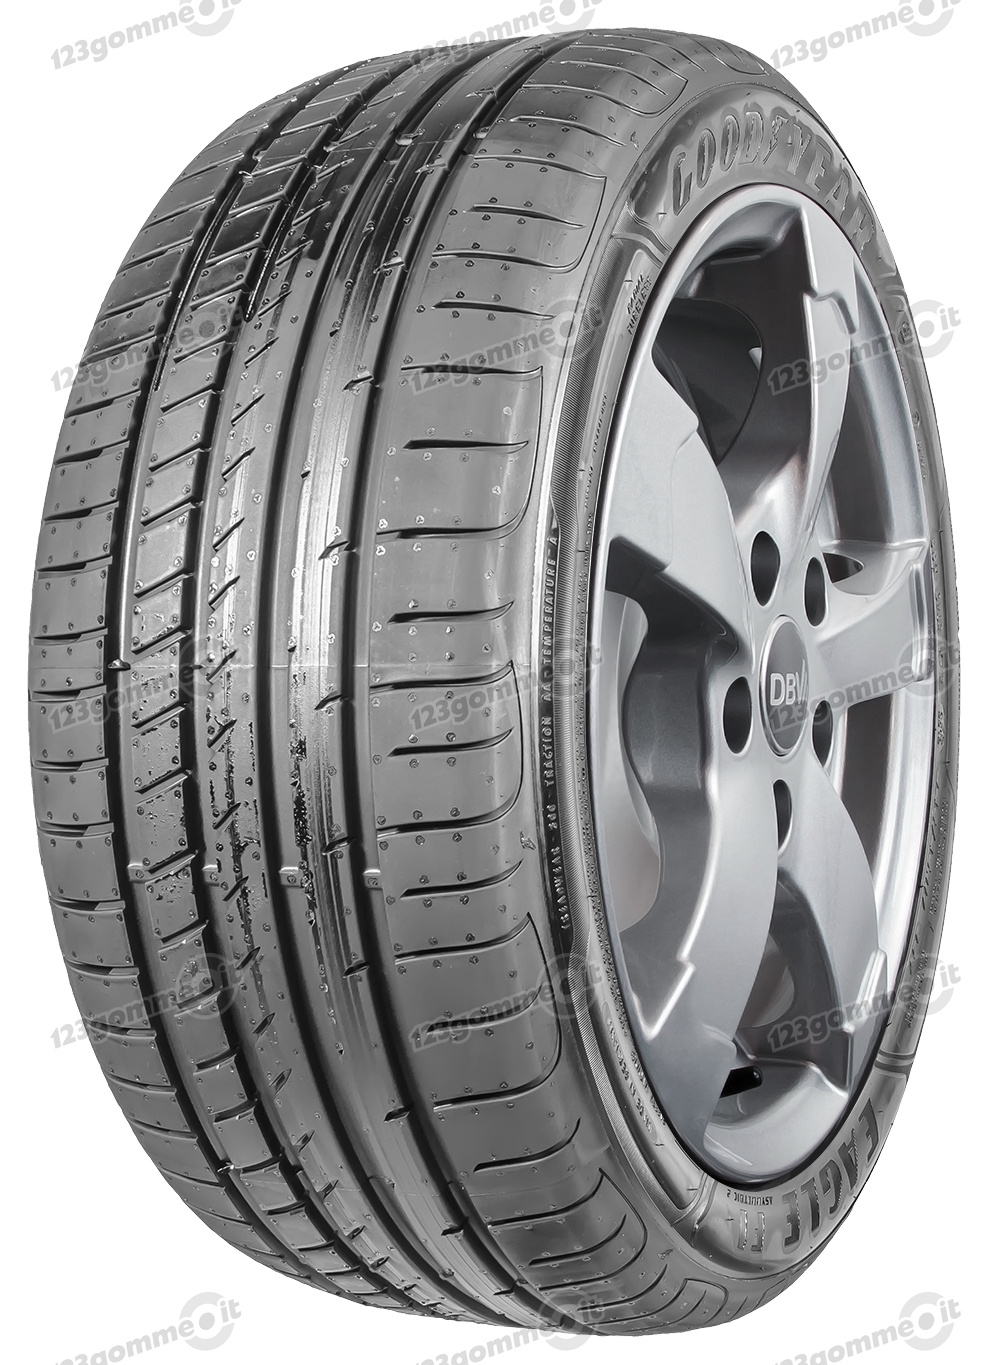 265/40 ZR19 (98Y) Eagle F1 Asymmetric 2 N0 FP  Eagle F1 Asymmetric 2 N0 FP